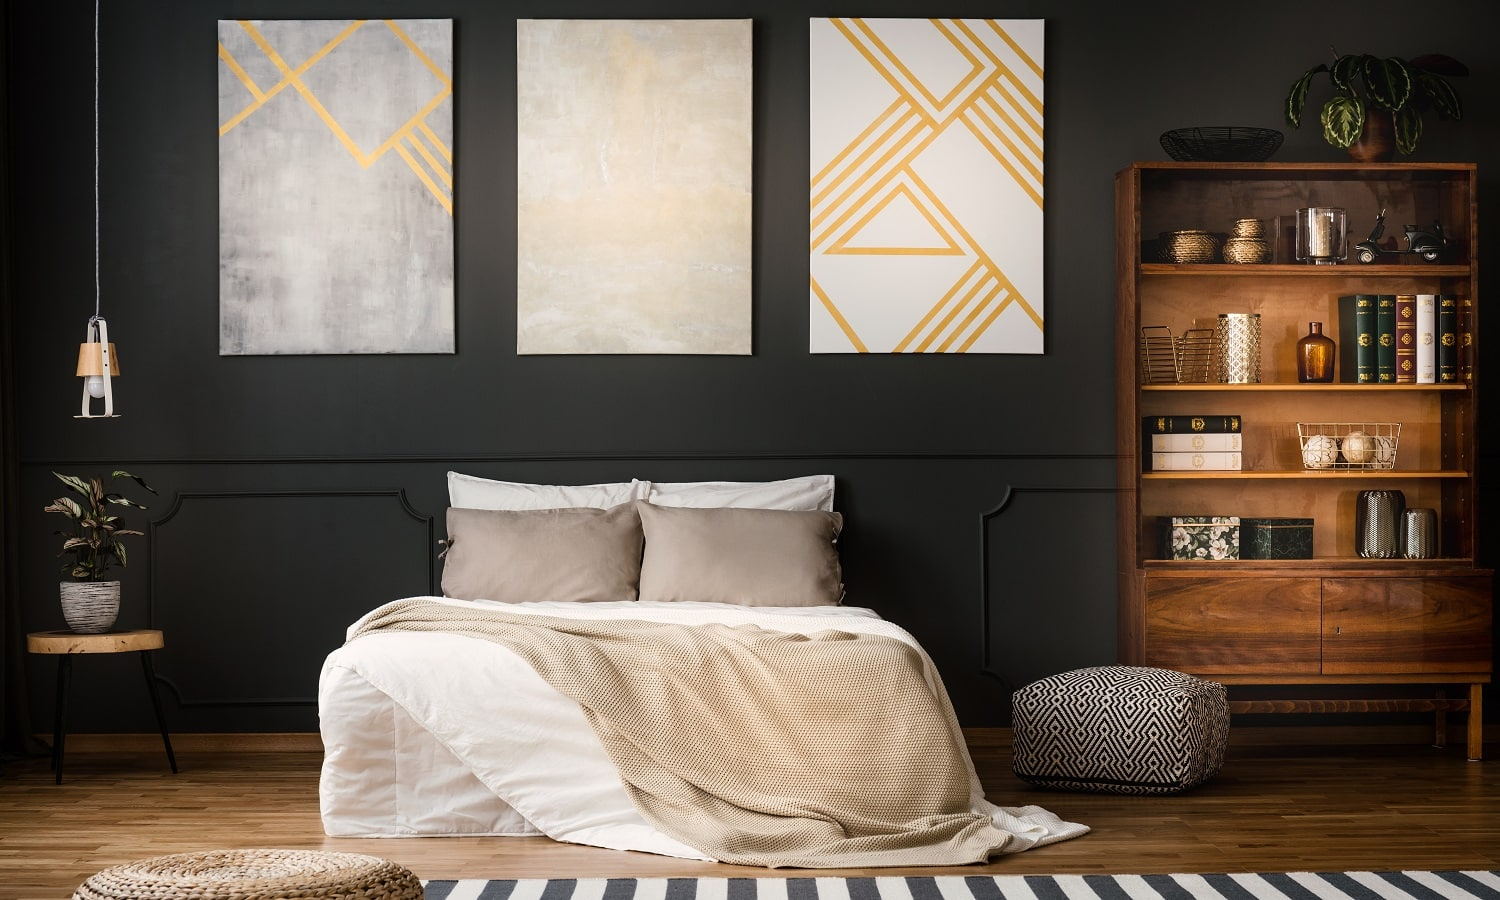 Elegant, wooden, antique bookcase in a dark, modern bedroom interior with a black wall and beige paintings with golden elements